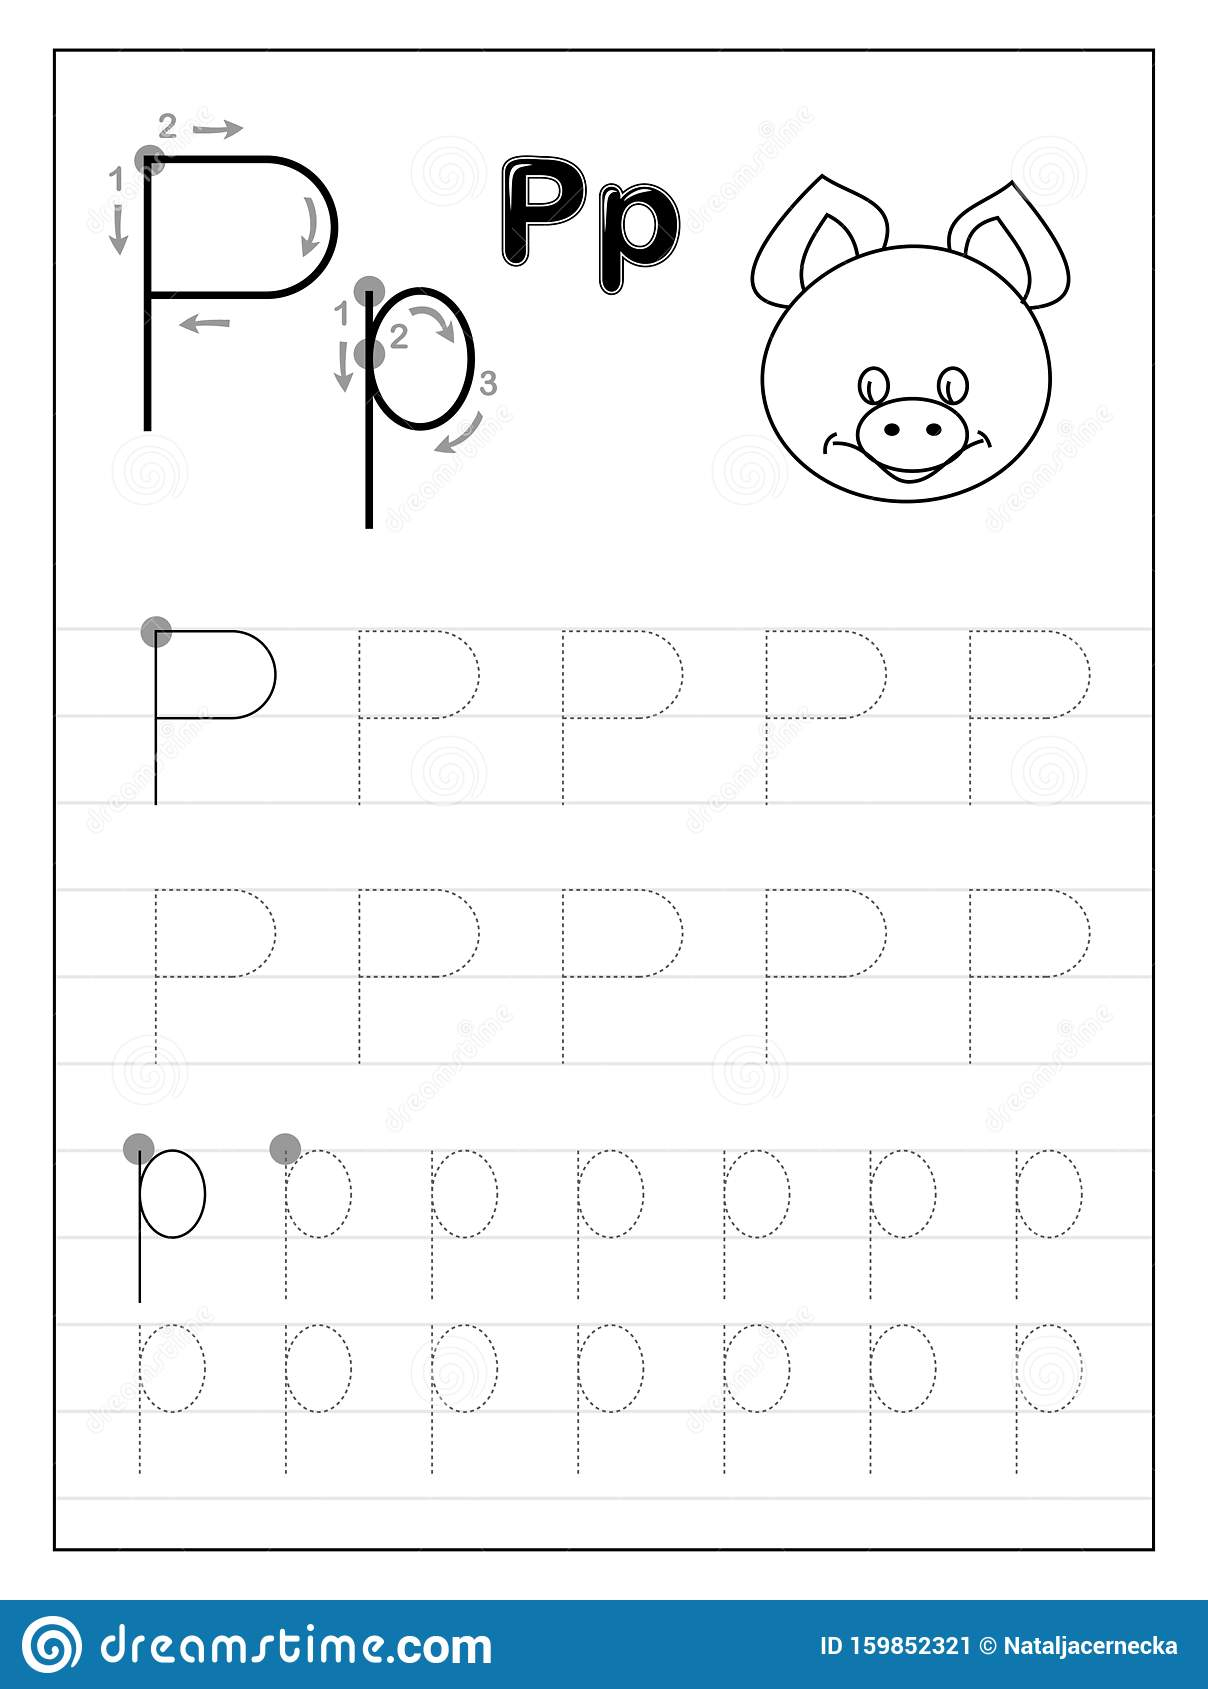 Tracing Alphabet Letter P Black And White Educational Pages for Letter P Tracing Worksheets For Preschool